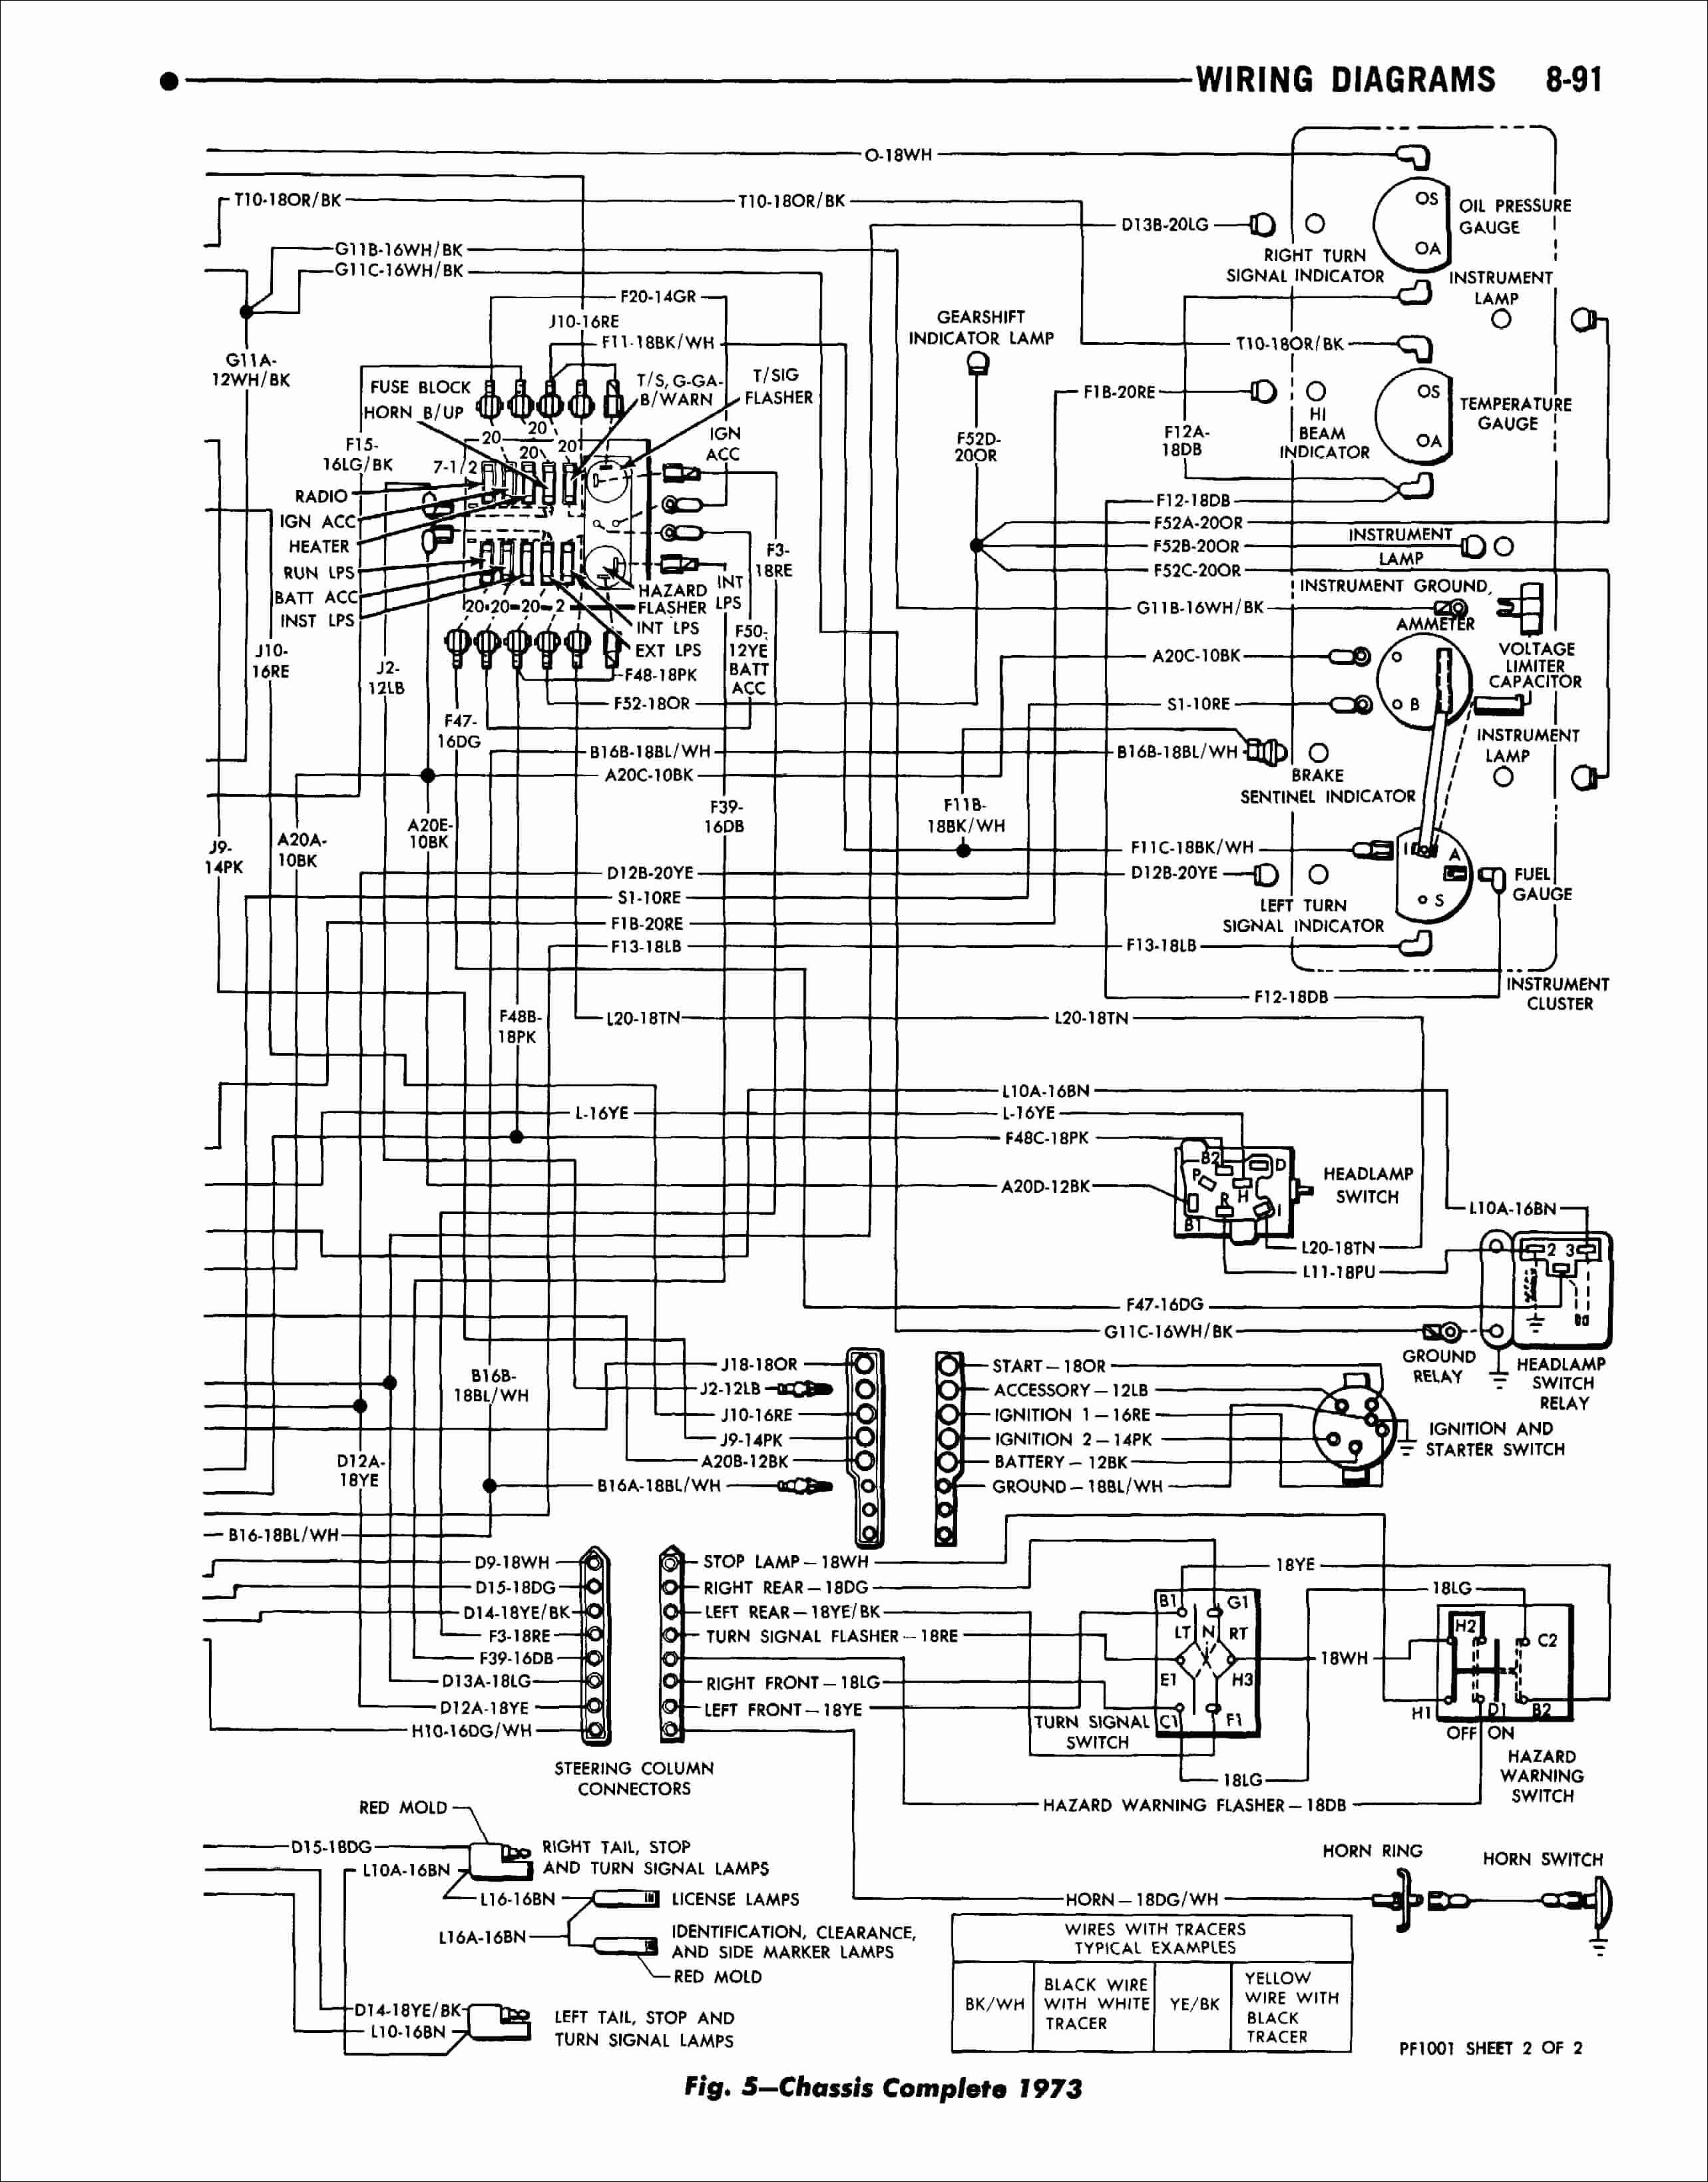 Wfco 8725 Wiring Diagram Wfco 8735 Wiring Diagram